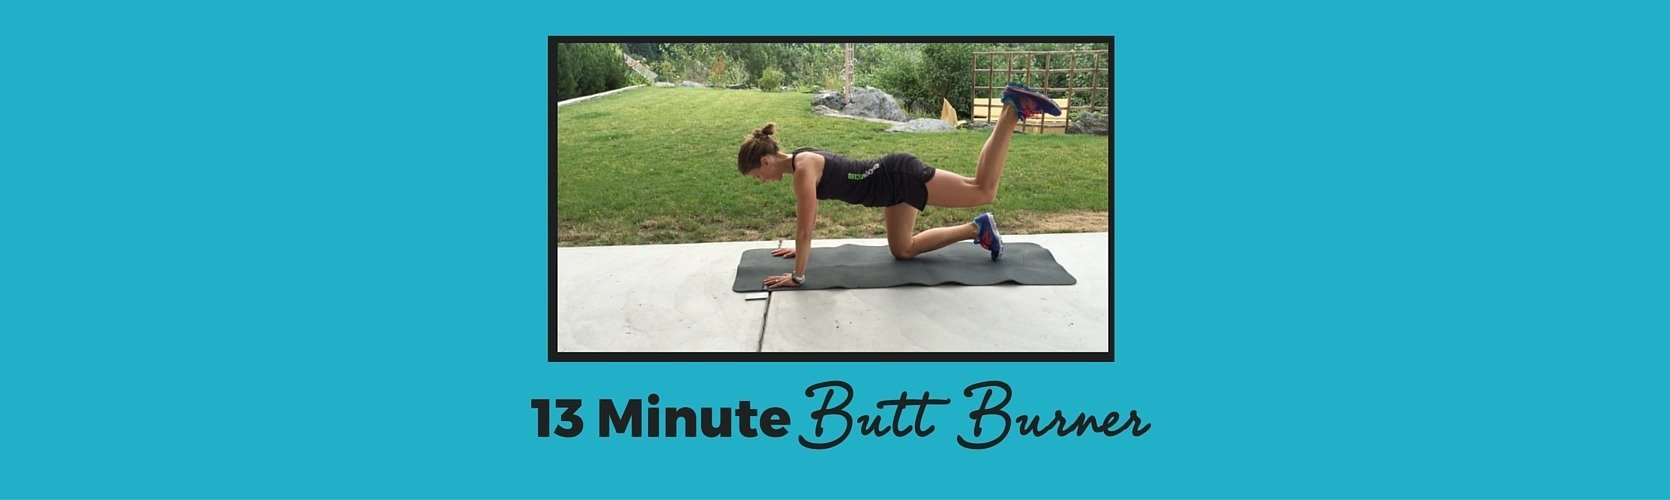 13 Minute Butt Burner